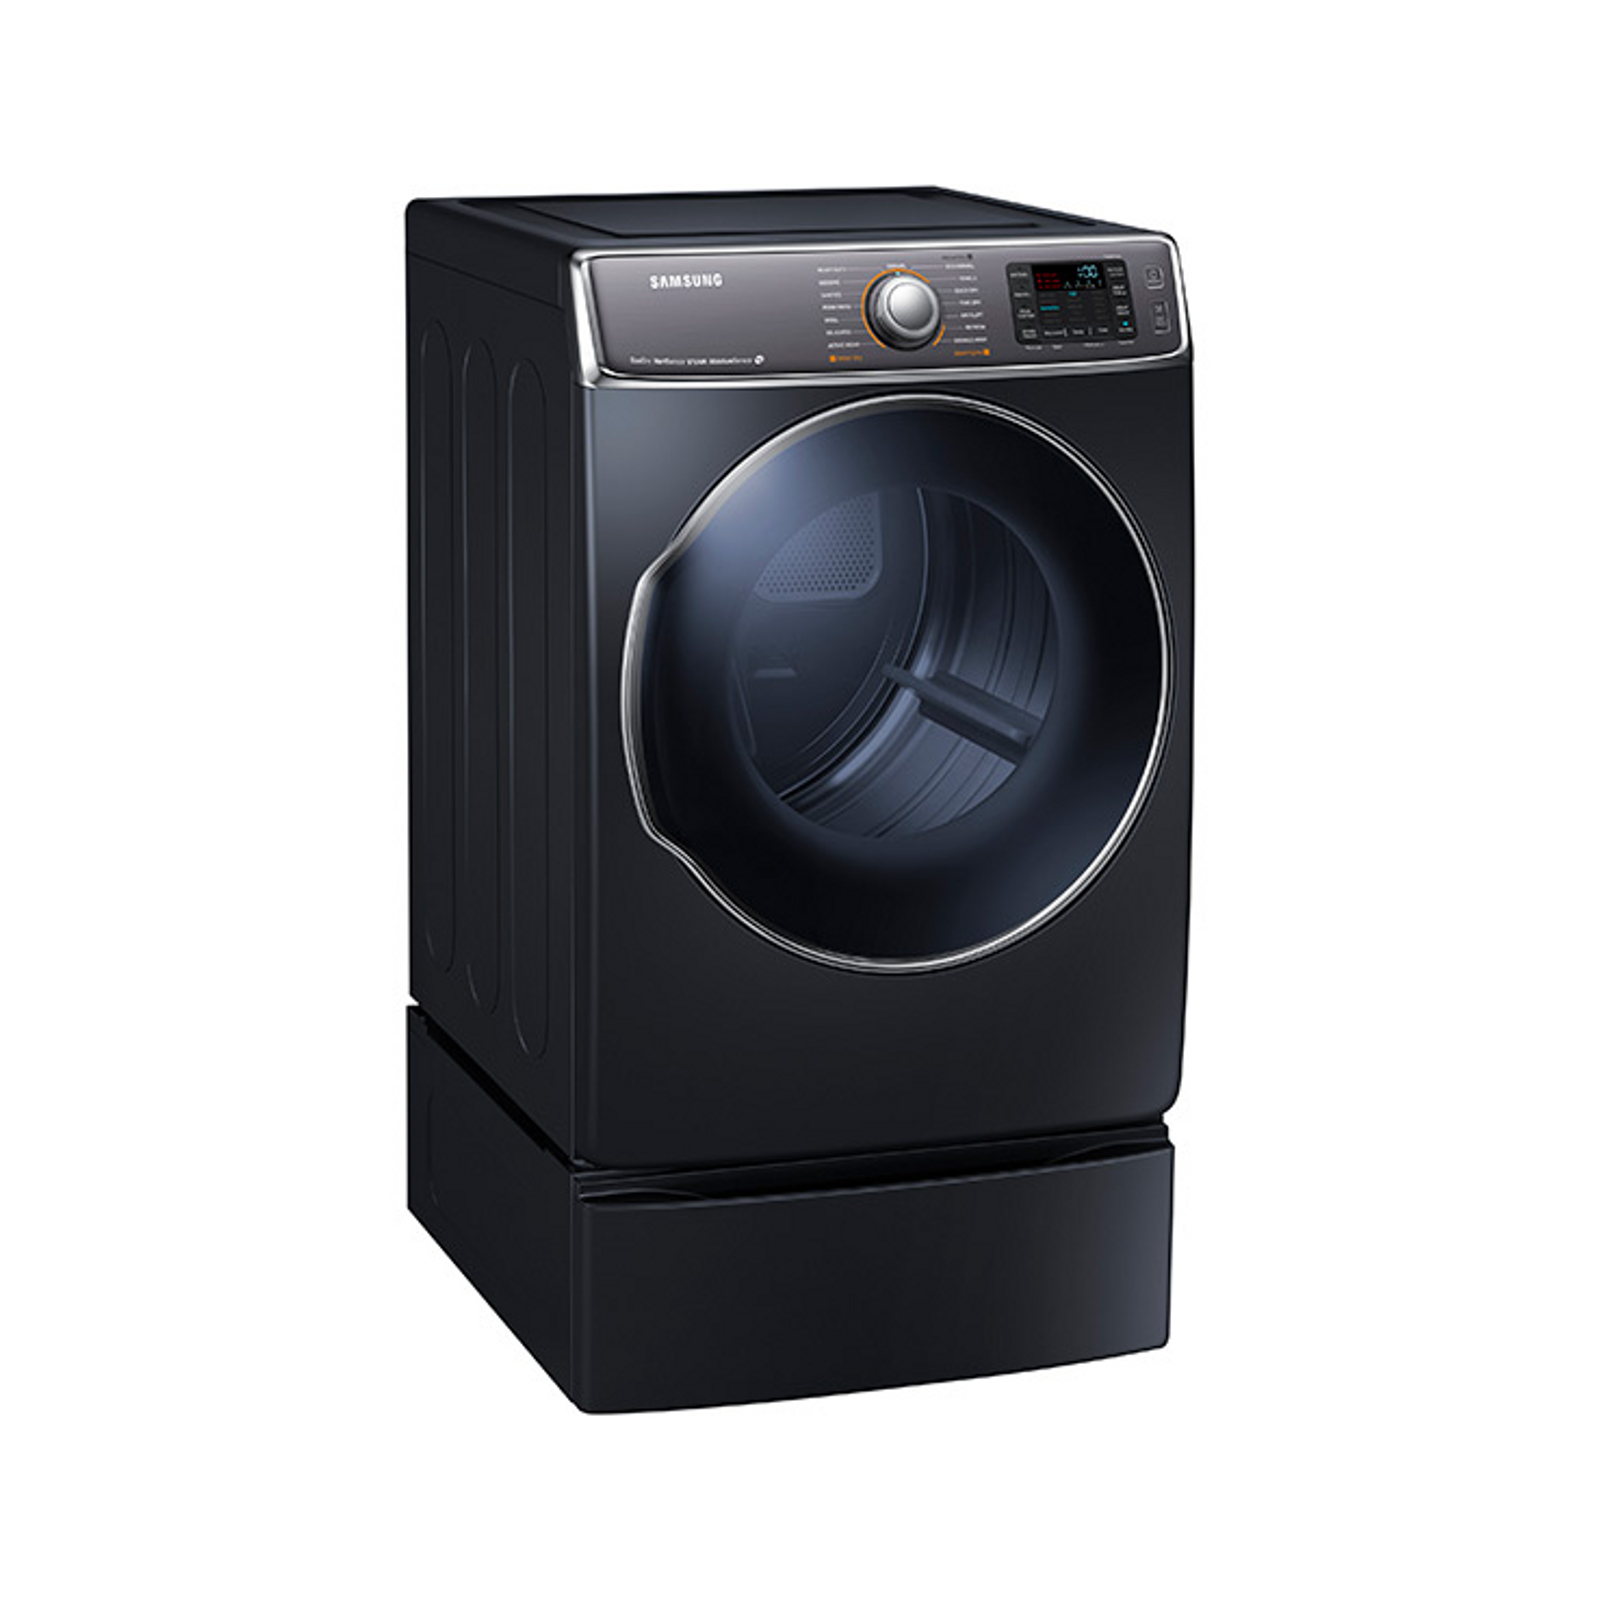 Samsung DV56H9100EG 9.5 cu. ft. Front-Load Electric Dryer - Onyx